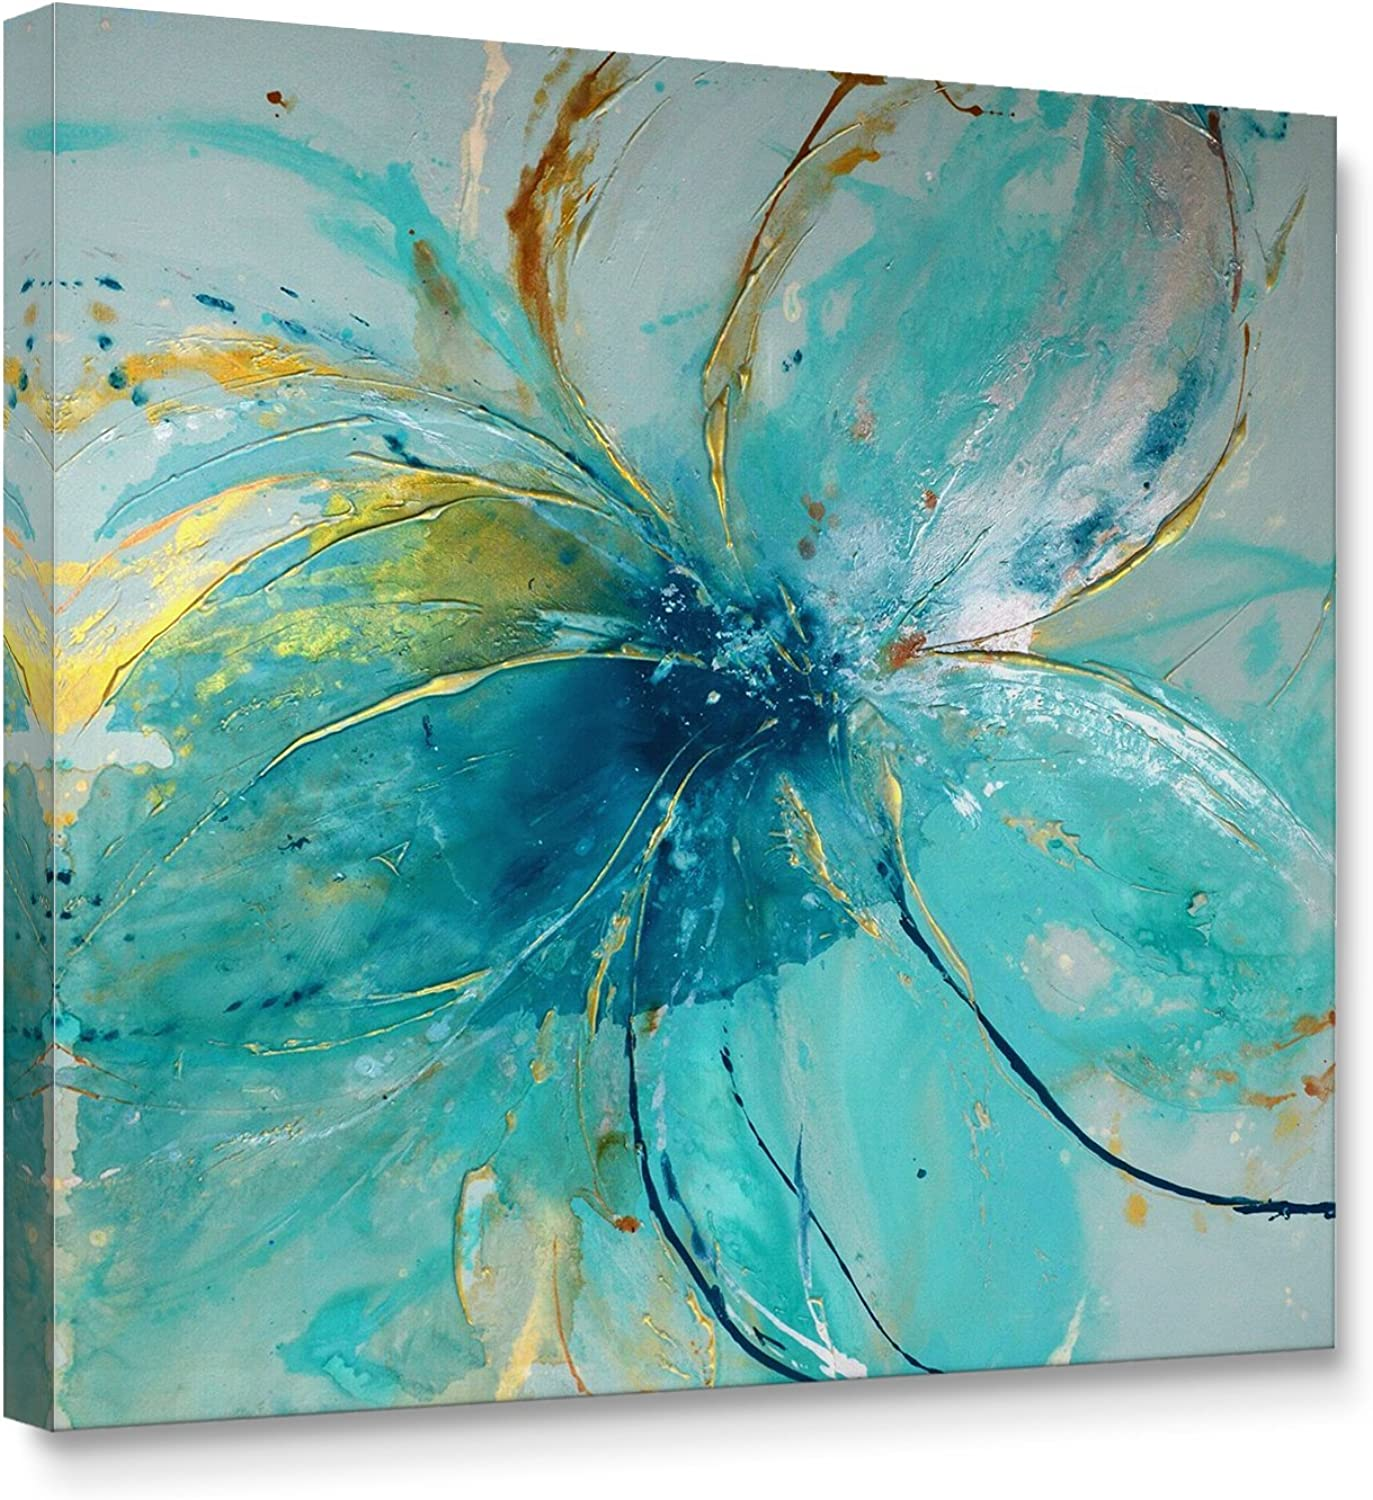 Niwo Art (TM - bluee Flower A, Floral Painting Artwork - Giclee Wall Art for Home Decor,Office or Lobby, Gallery Wrapped, Stretched, Framed Ready to Hang (24 x24 x1.5 )